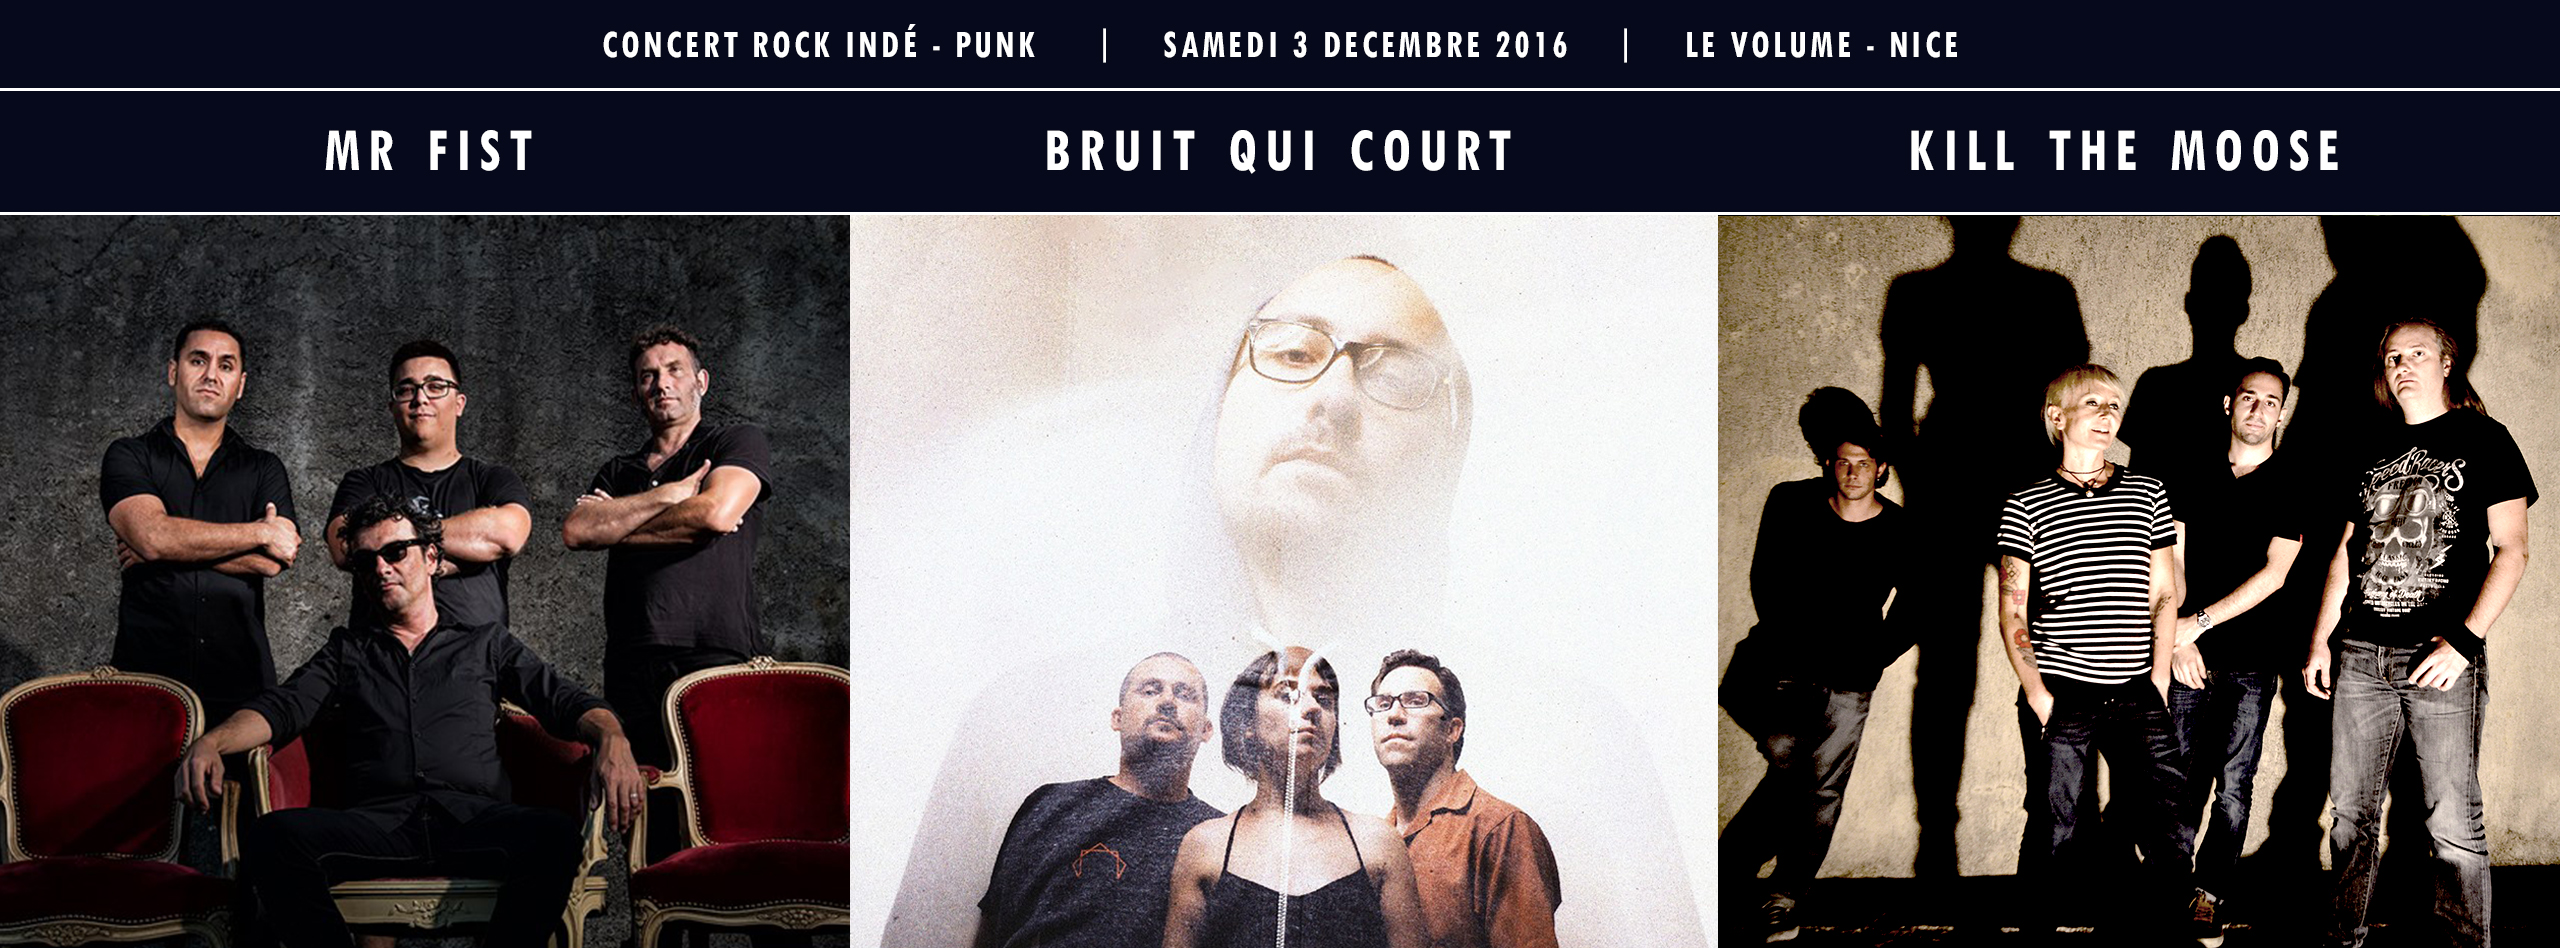 le-volume-3-dec-bruit-qui-court